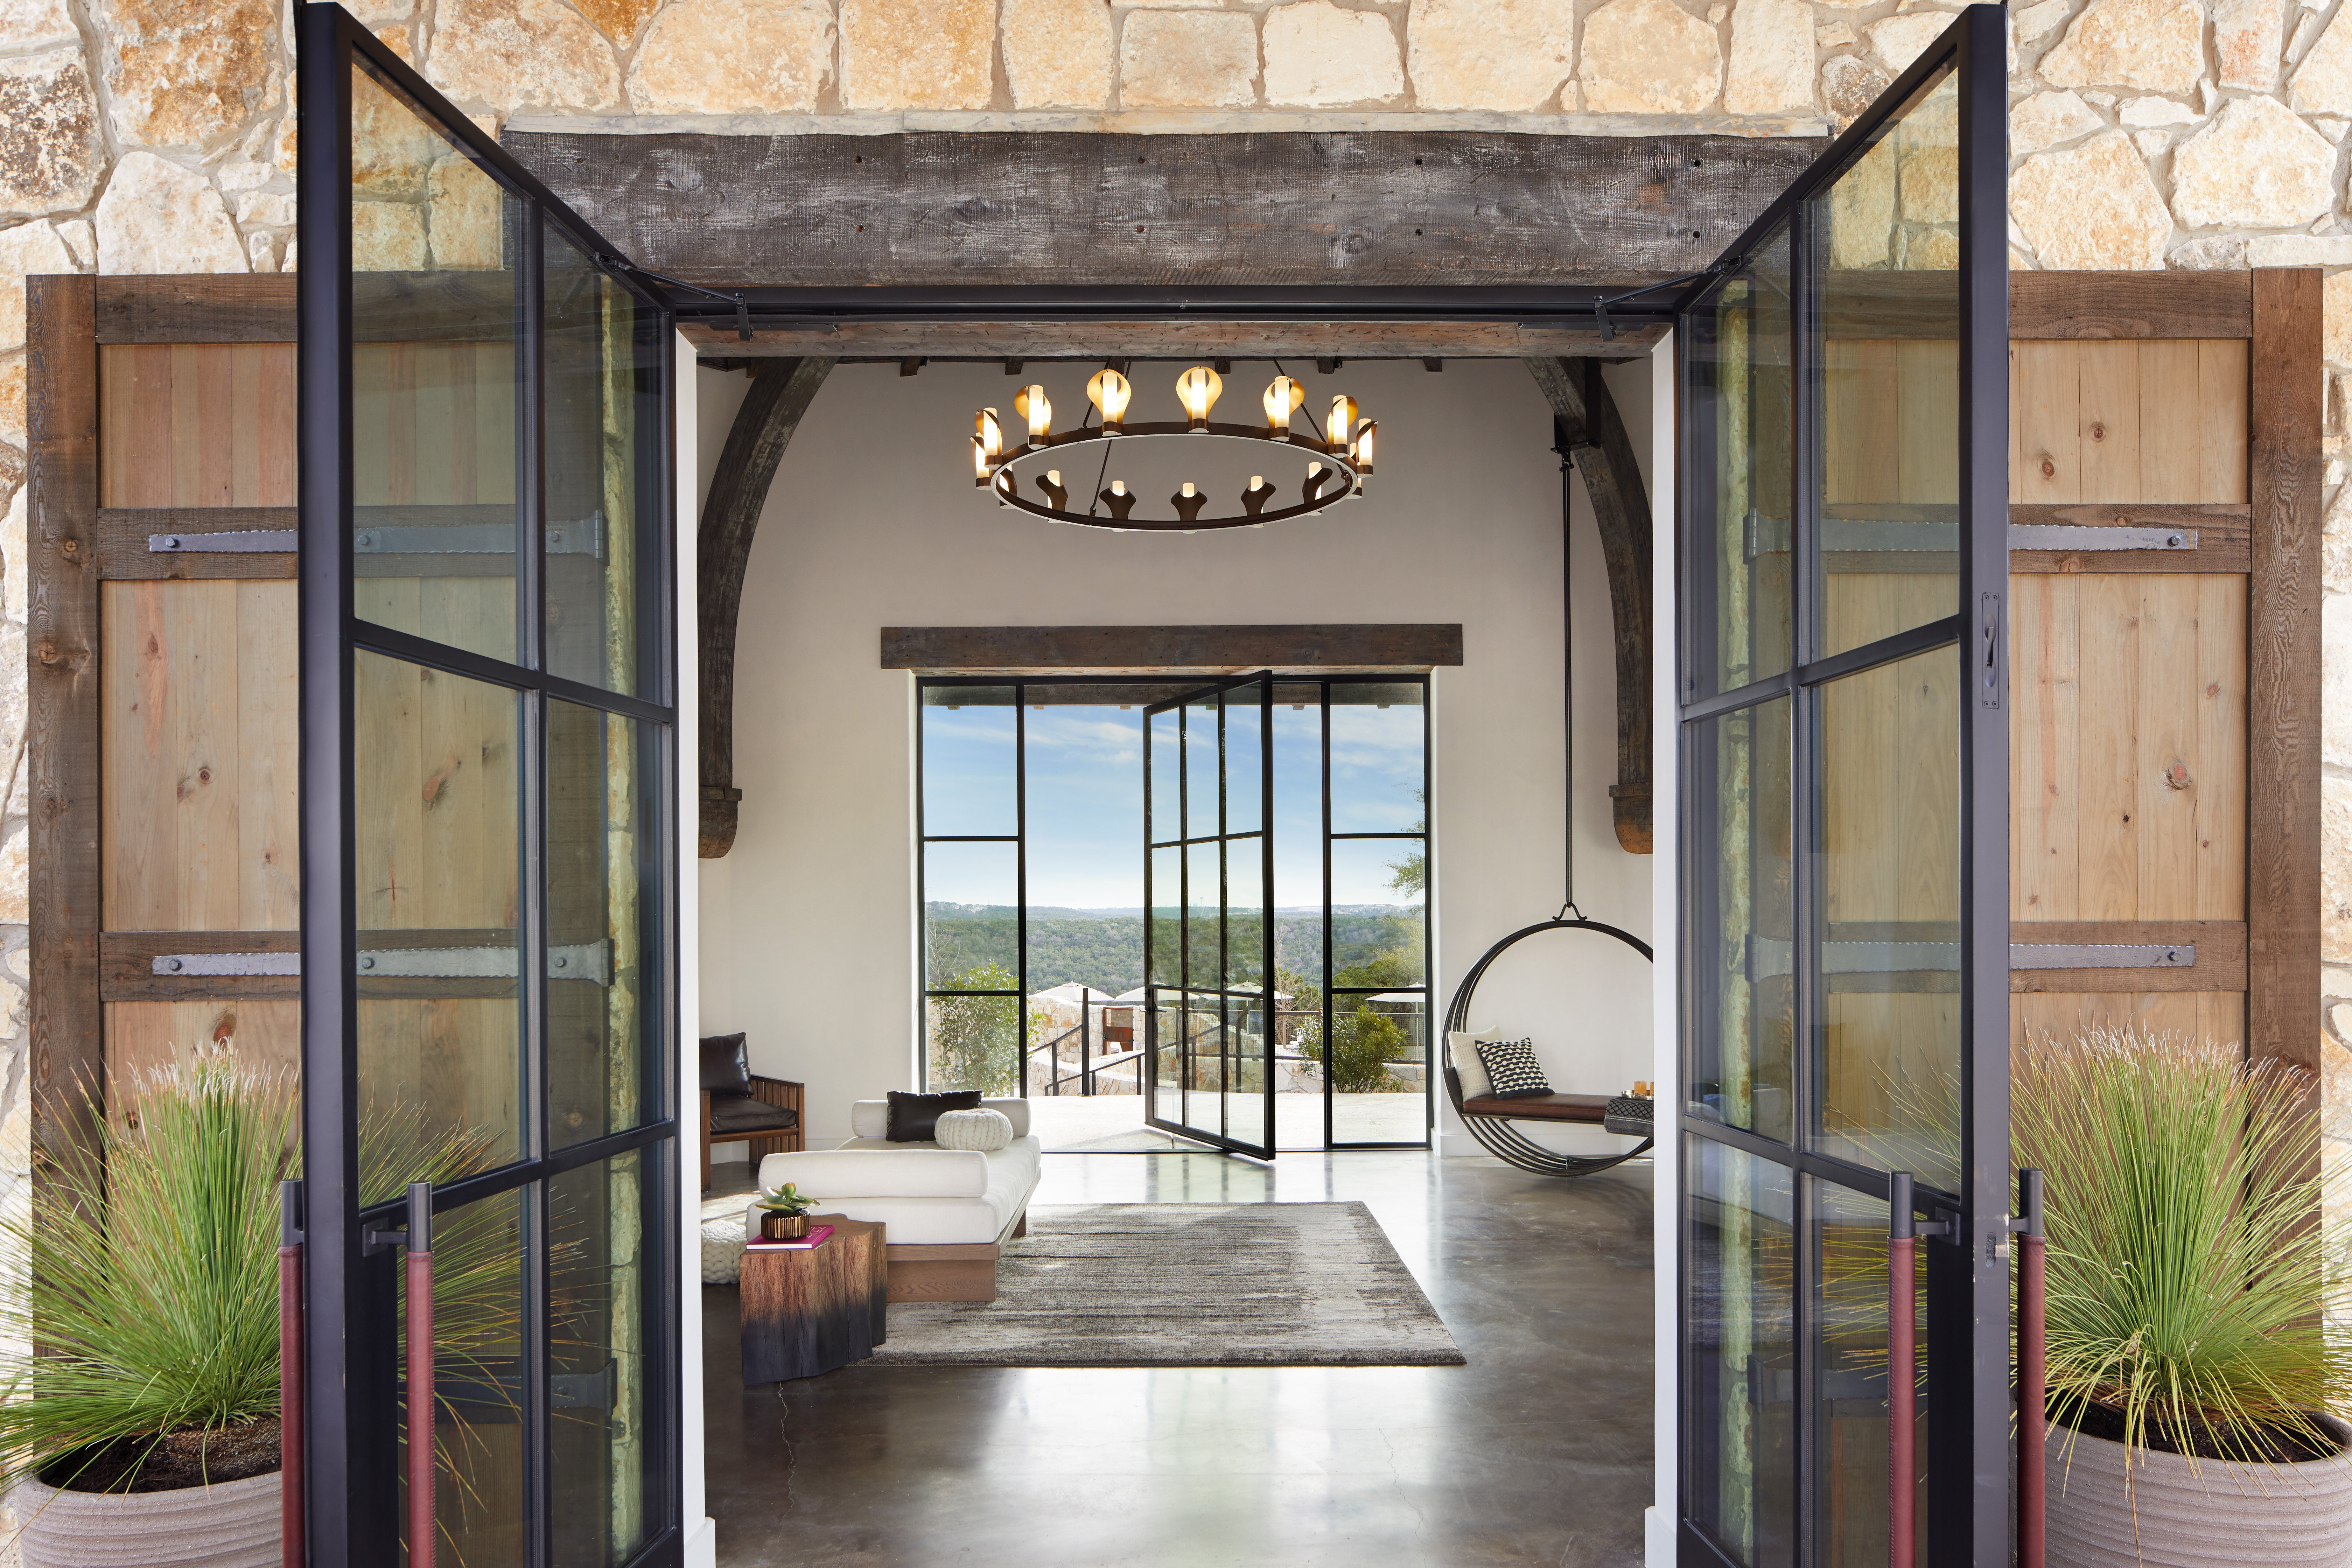 Arrival Center // Courtesy of James Baigrie for Miraval Austin